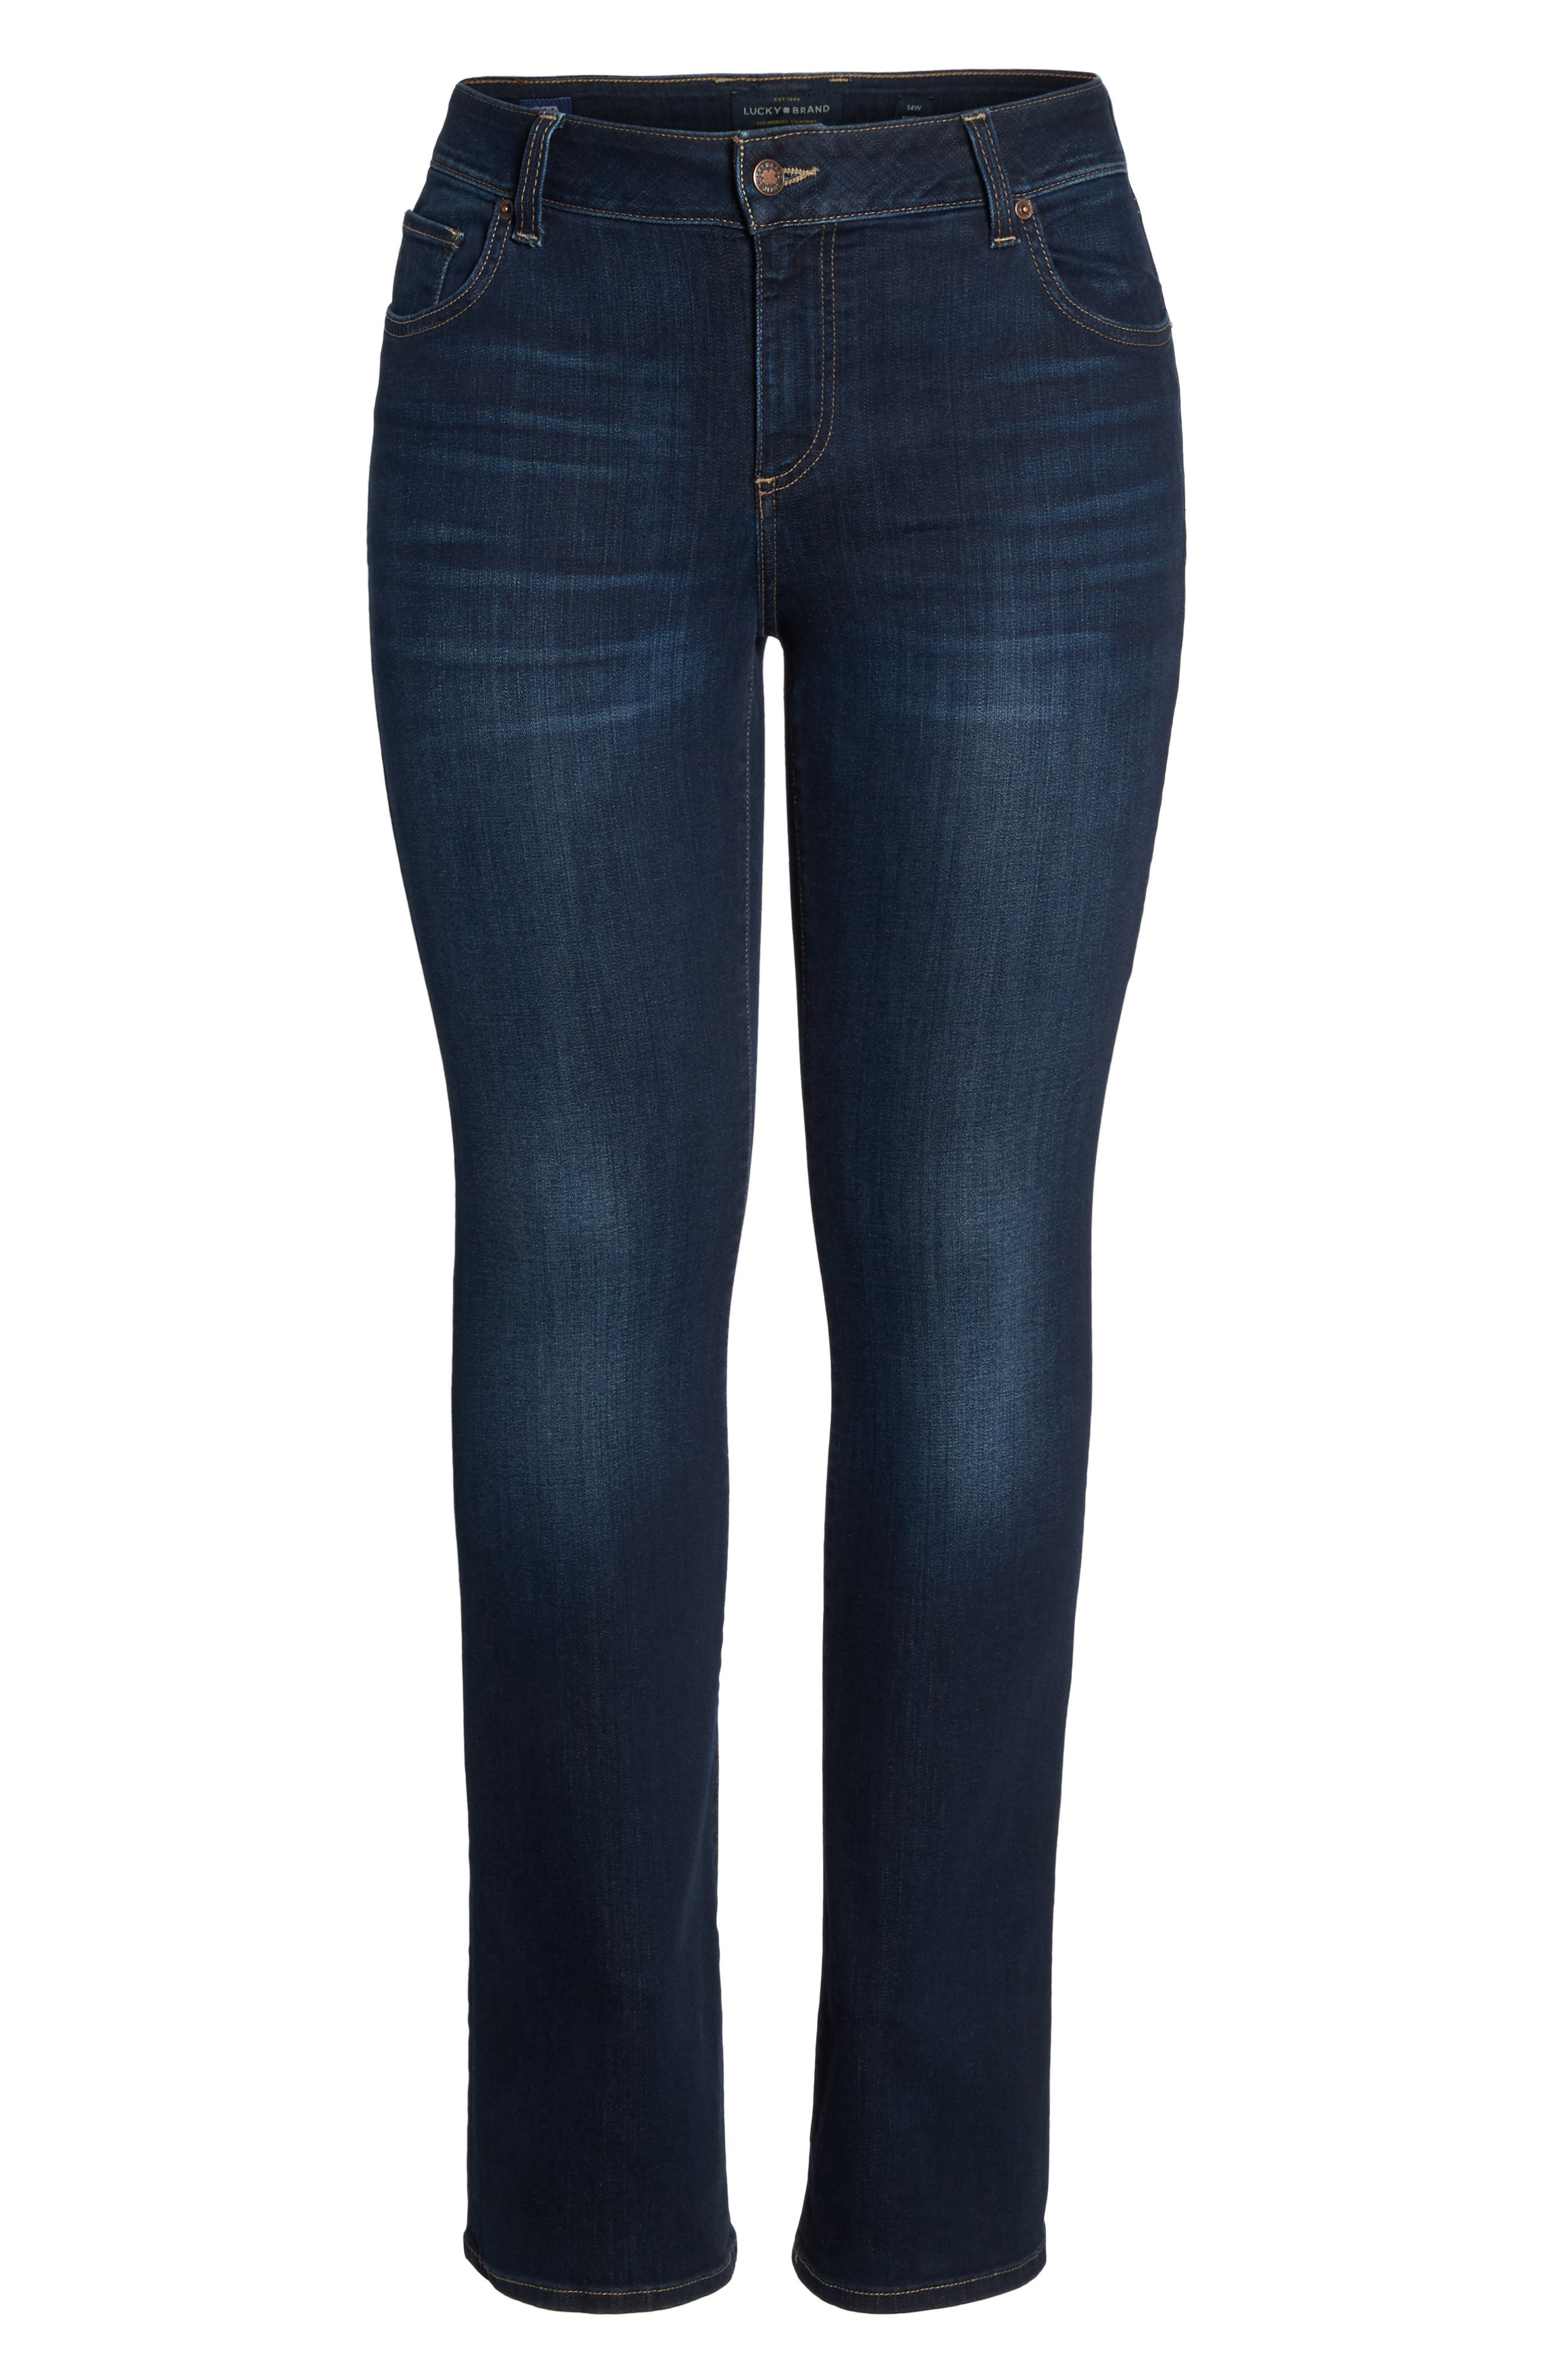 Ginger Bootcut Jeans,                             Alternate thumbnail 6, color,                             Twilight Blue